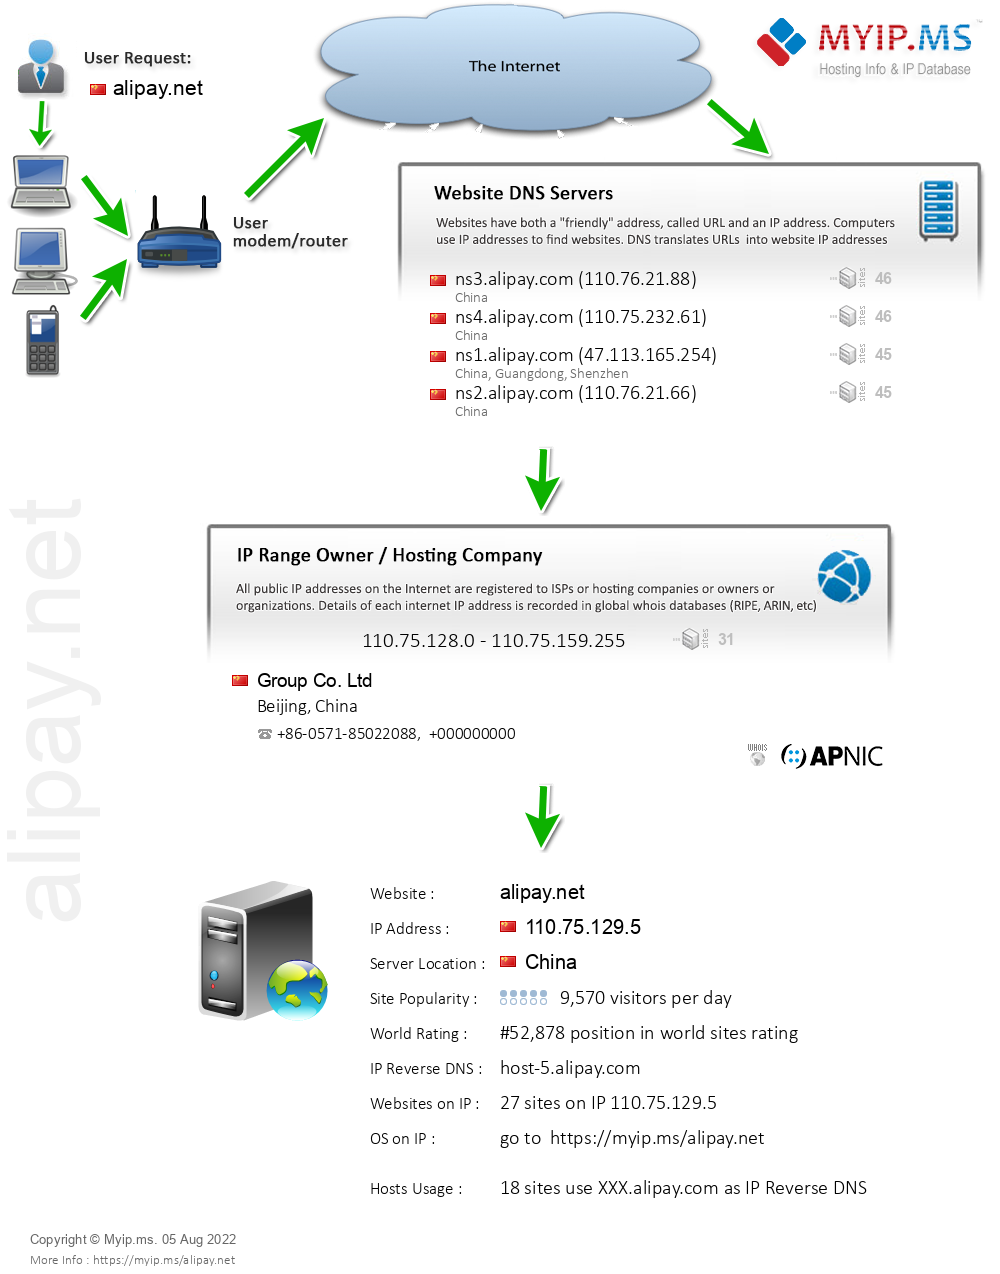 Alipay.net - Website Hosting Visual IP Diagram